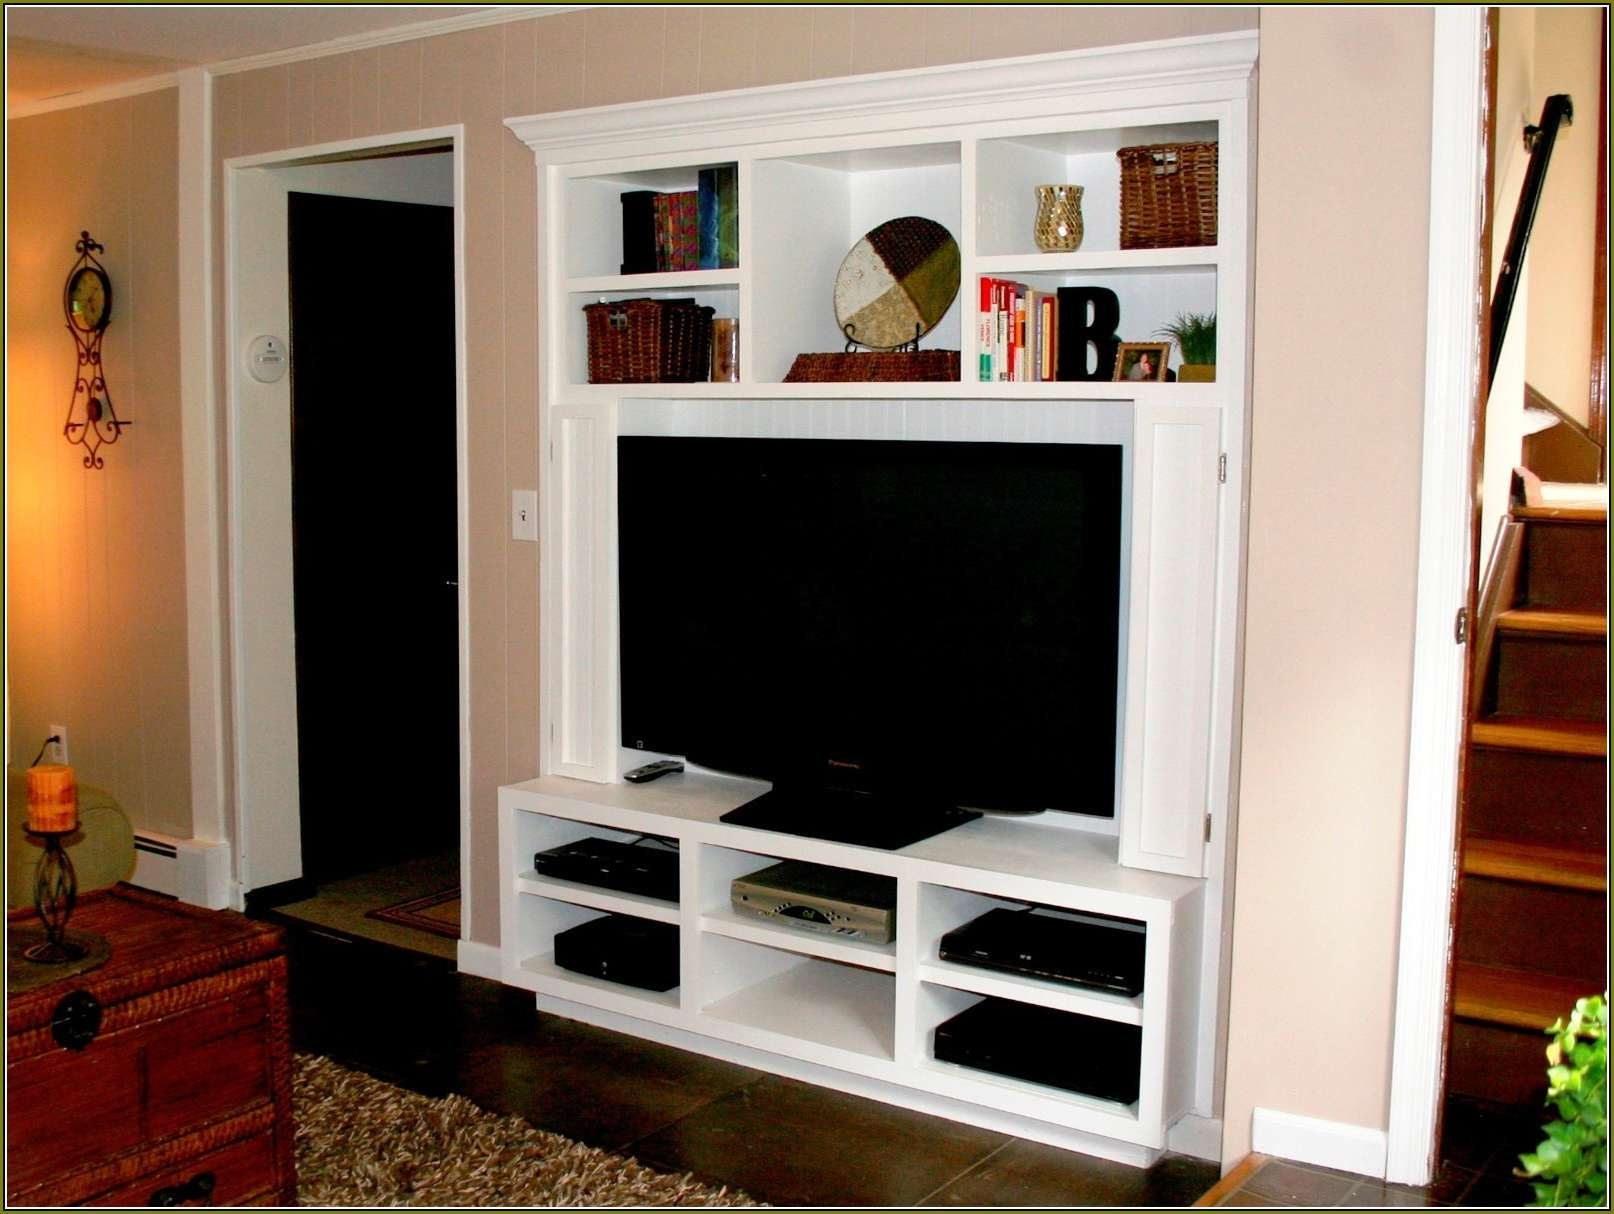 Invigorating Wall Mounted Tv Cabinets For As Wells As Flat Screens In Wall Mounted Tv Cabinets For Flat Screens (View 8 of 20)